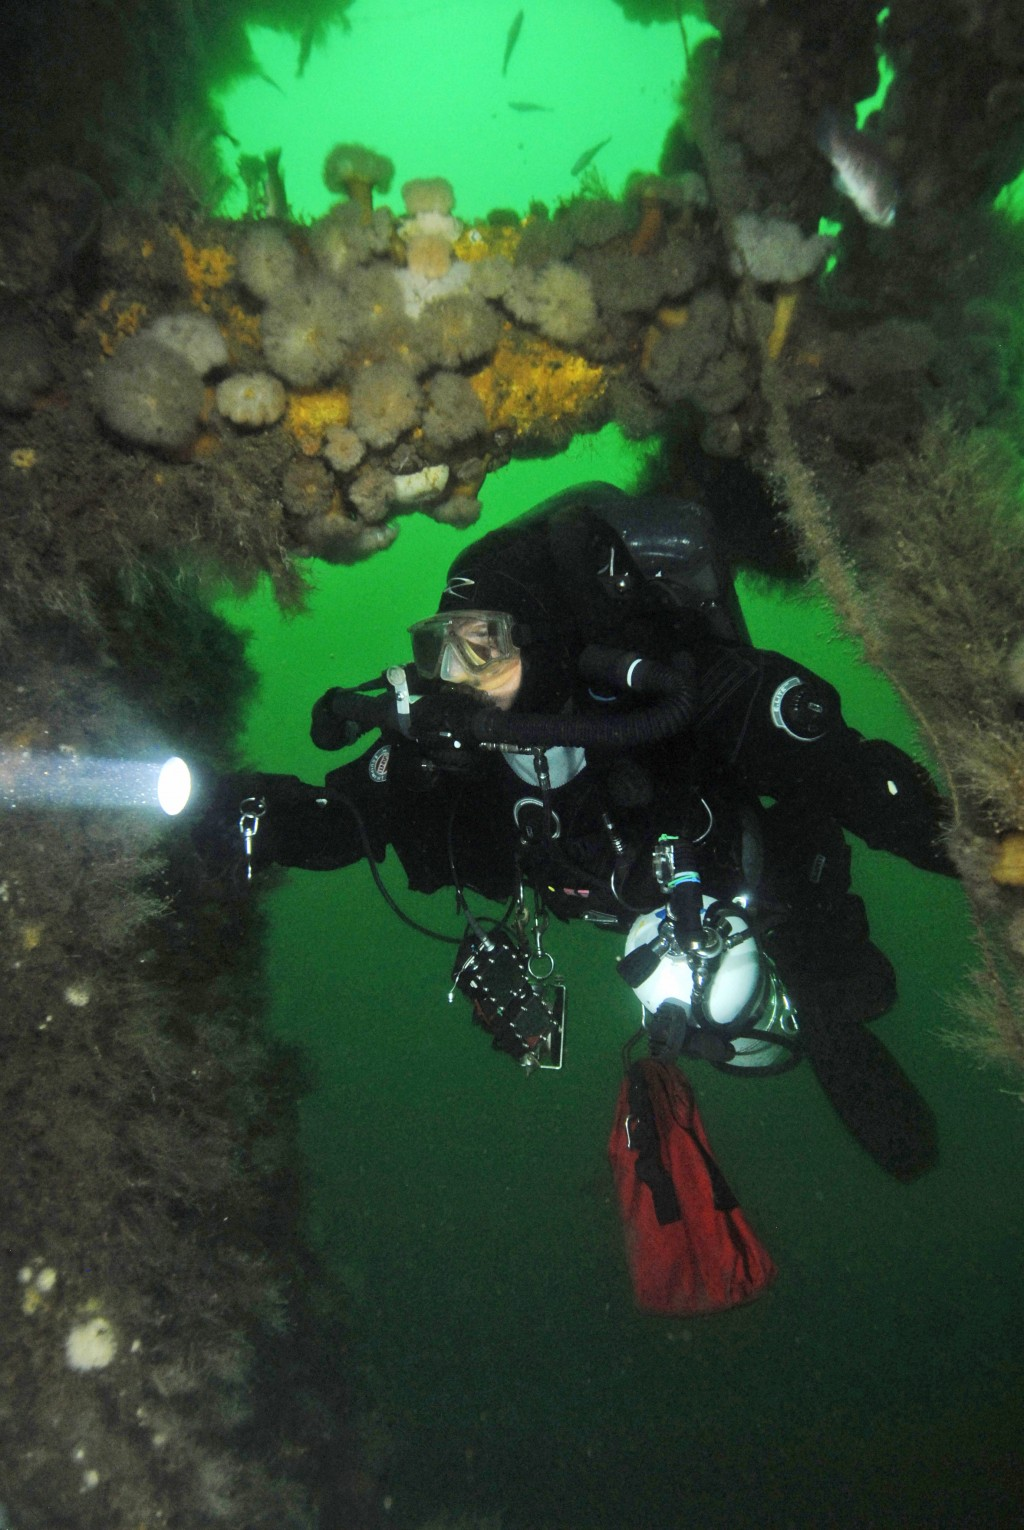 This 2017 photo provided by Tom McCarthy shows a diver exploring the wreck of the SS Oregon off the coast of Long Island in New York. An ale introduce